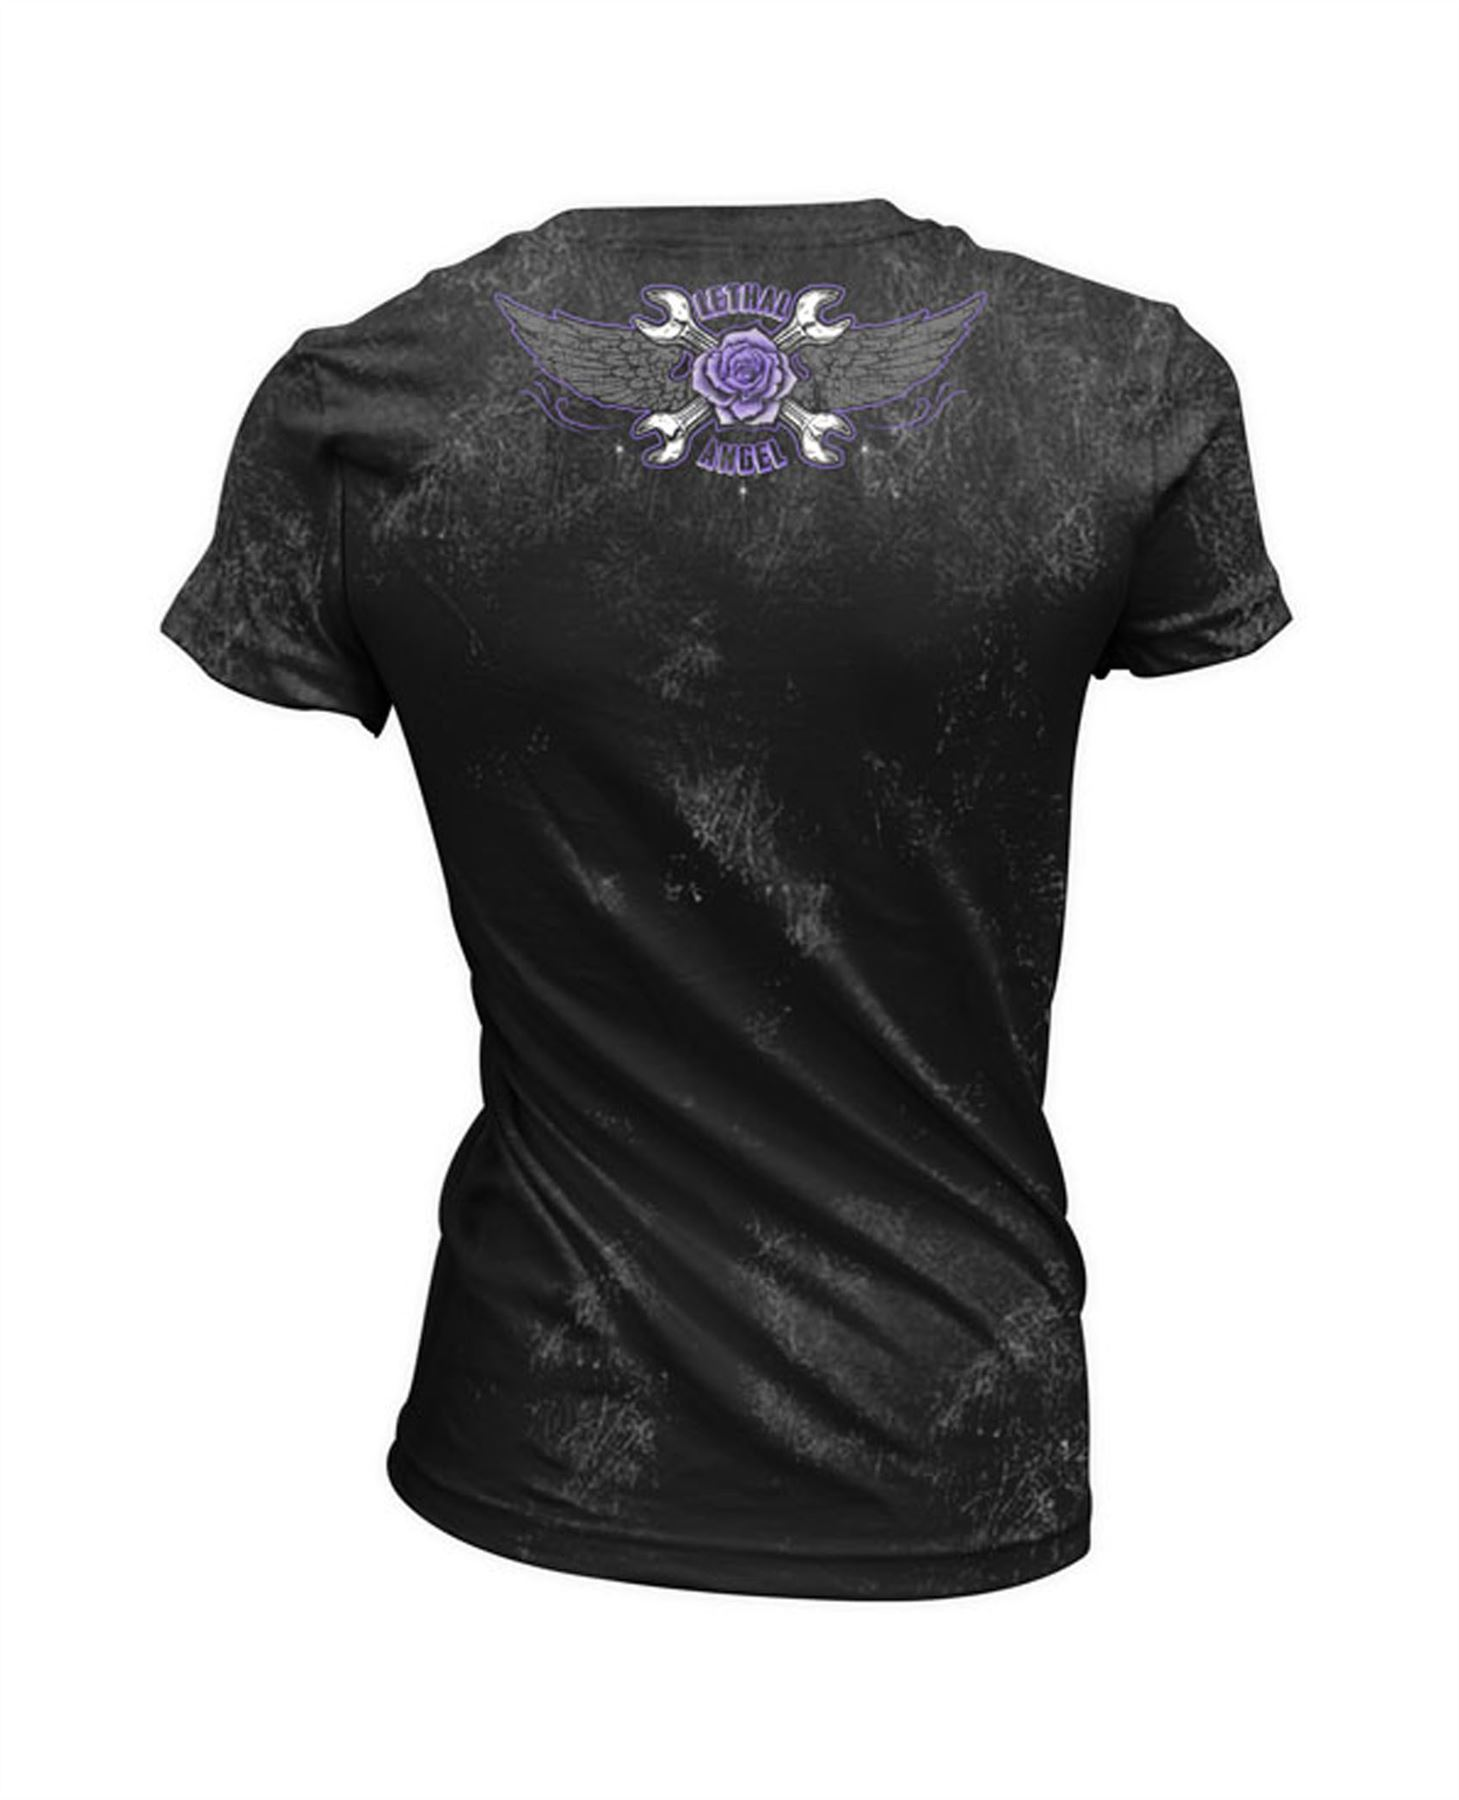 Lethal Threat Motorcycles Over Diamonds Womens Short Sleeve T-Shirt Black